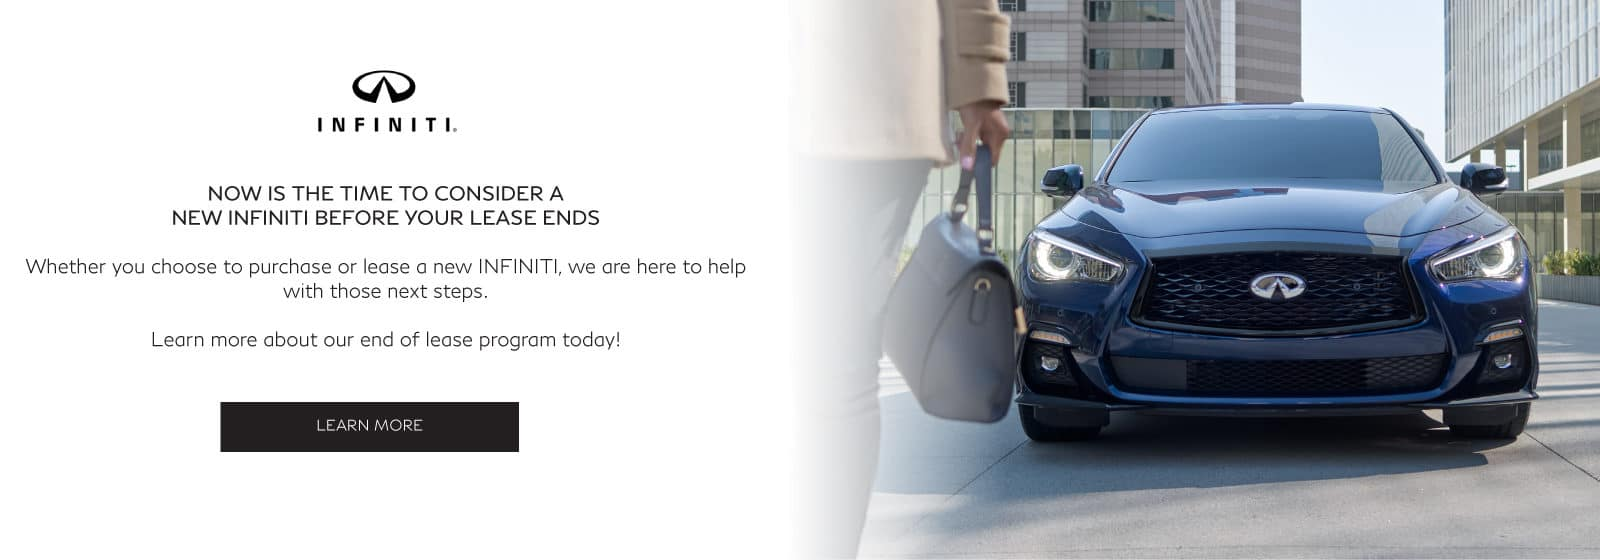 Now is the time to consider a new INFINITI before your lease ends. Whether you choose to purchase or lease a new INFINITI, we are here to help with those next steps. Learn more about our end of lease program today. Learn More